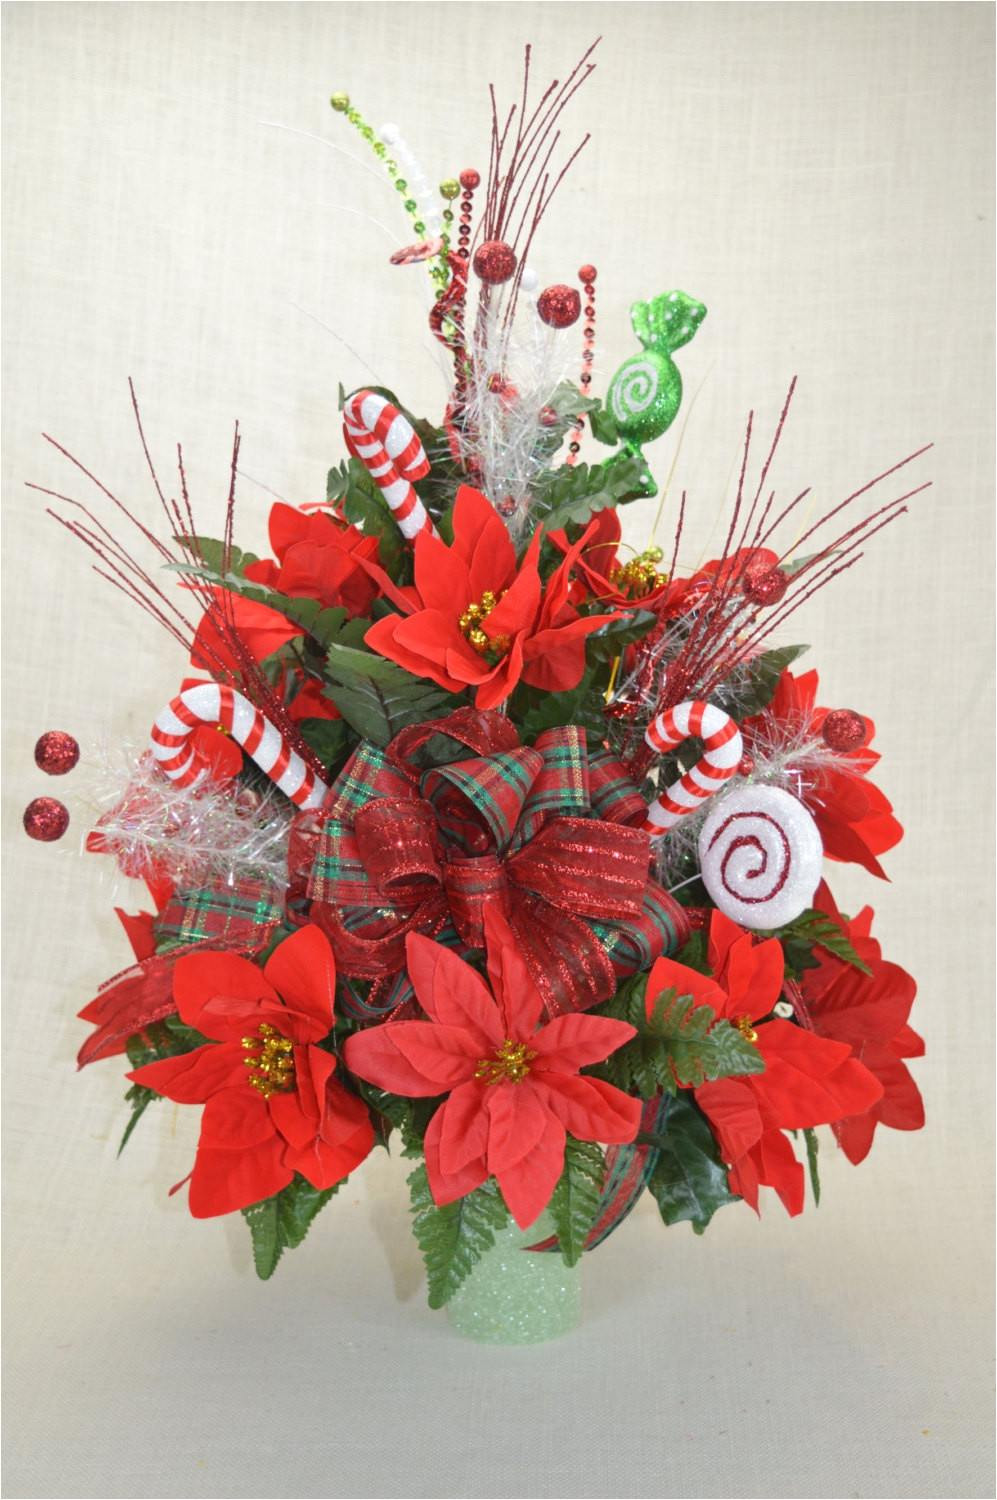 27 Recommended Hydrangea Flowers In A Vase 2021 free download hydrangea flowers in a vase of 27 fresh of christmas vase ideas christmas decor ideas regarding cemetery christmas decoration ideas vases tombstone foreversafe collection of christmas vase i